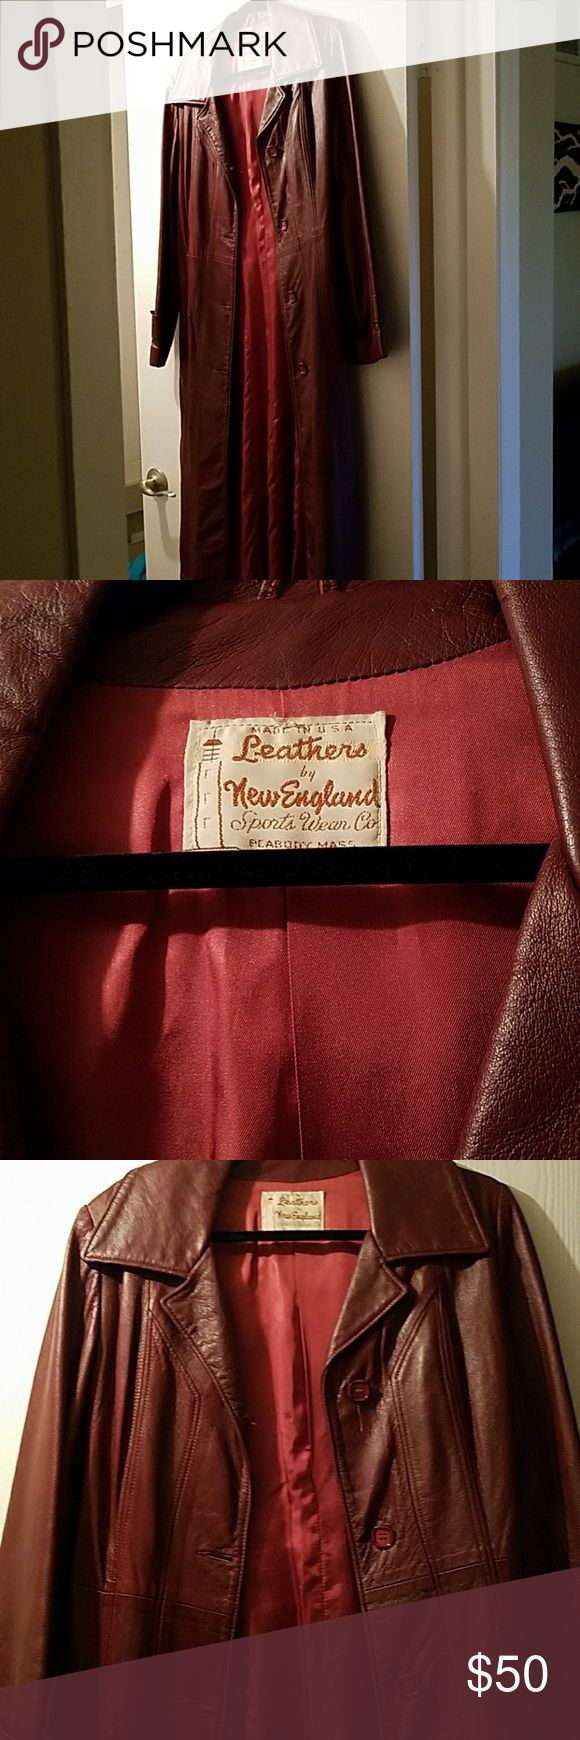 Vintage long leather coat Vintage red leather women's coat. Made by leathers by new England sports wear company. Great condition, no wear or tear. Long knee length coat with belt. This is an actual vintage piece. Jackets & Coats Trench Coats